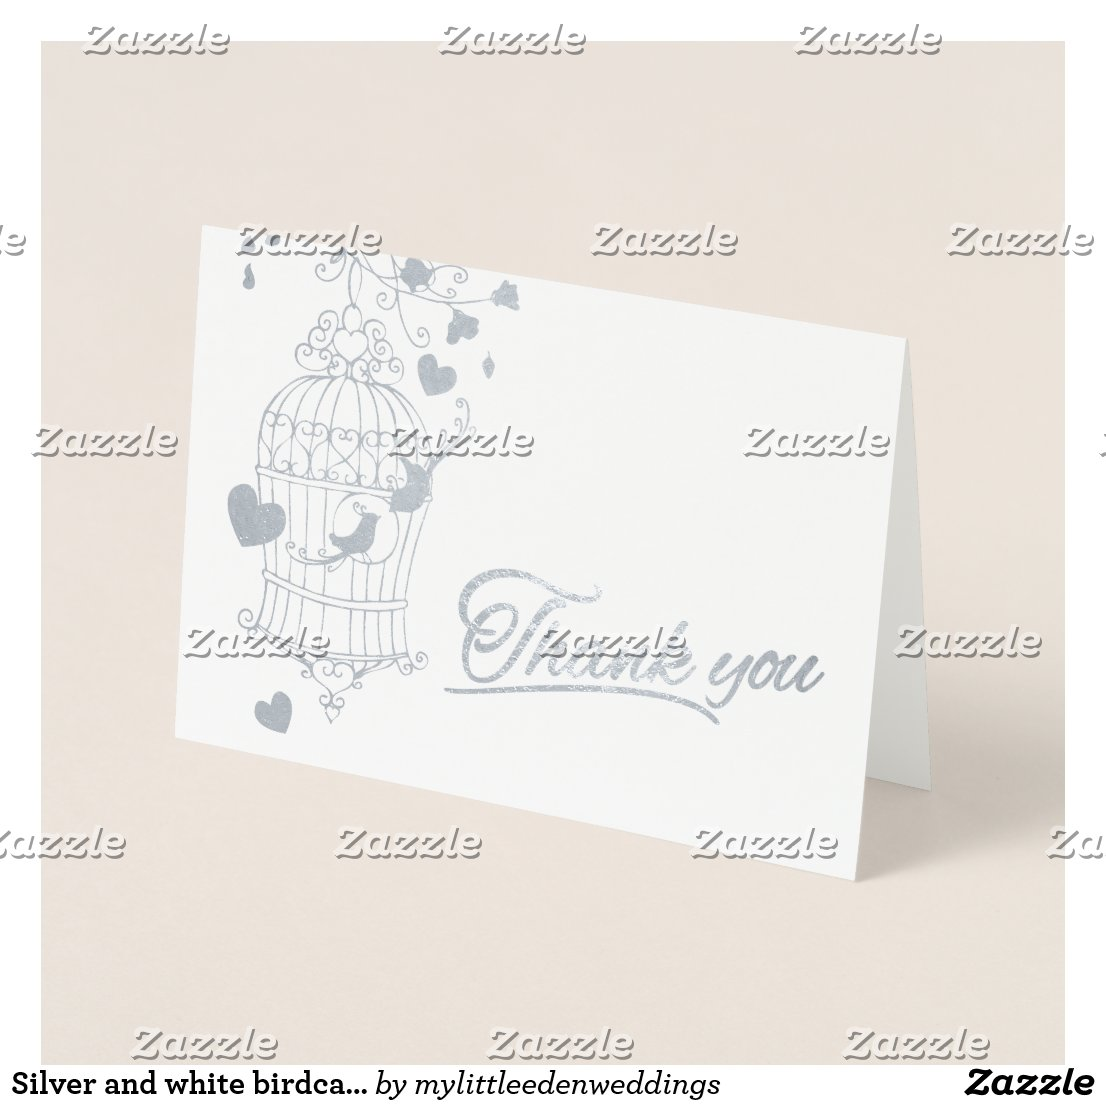 Silver and white birdcage wedding thank you card